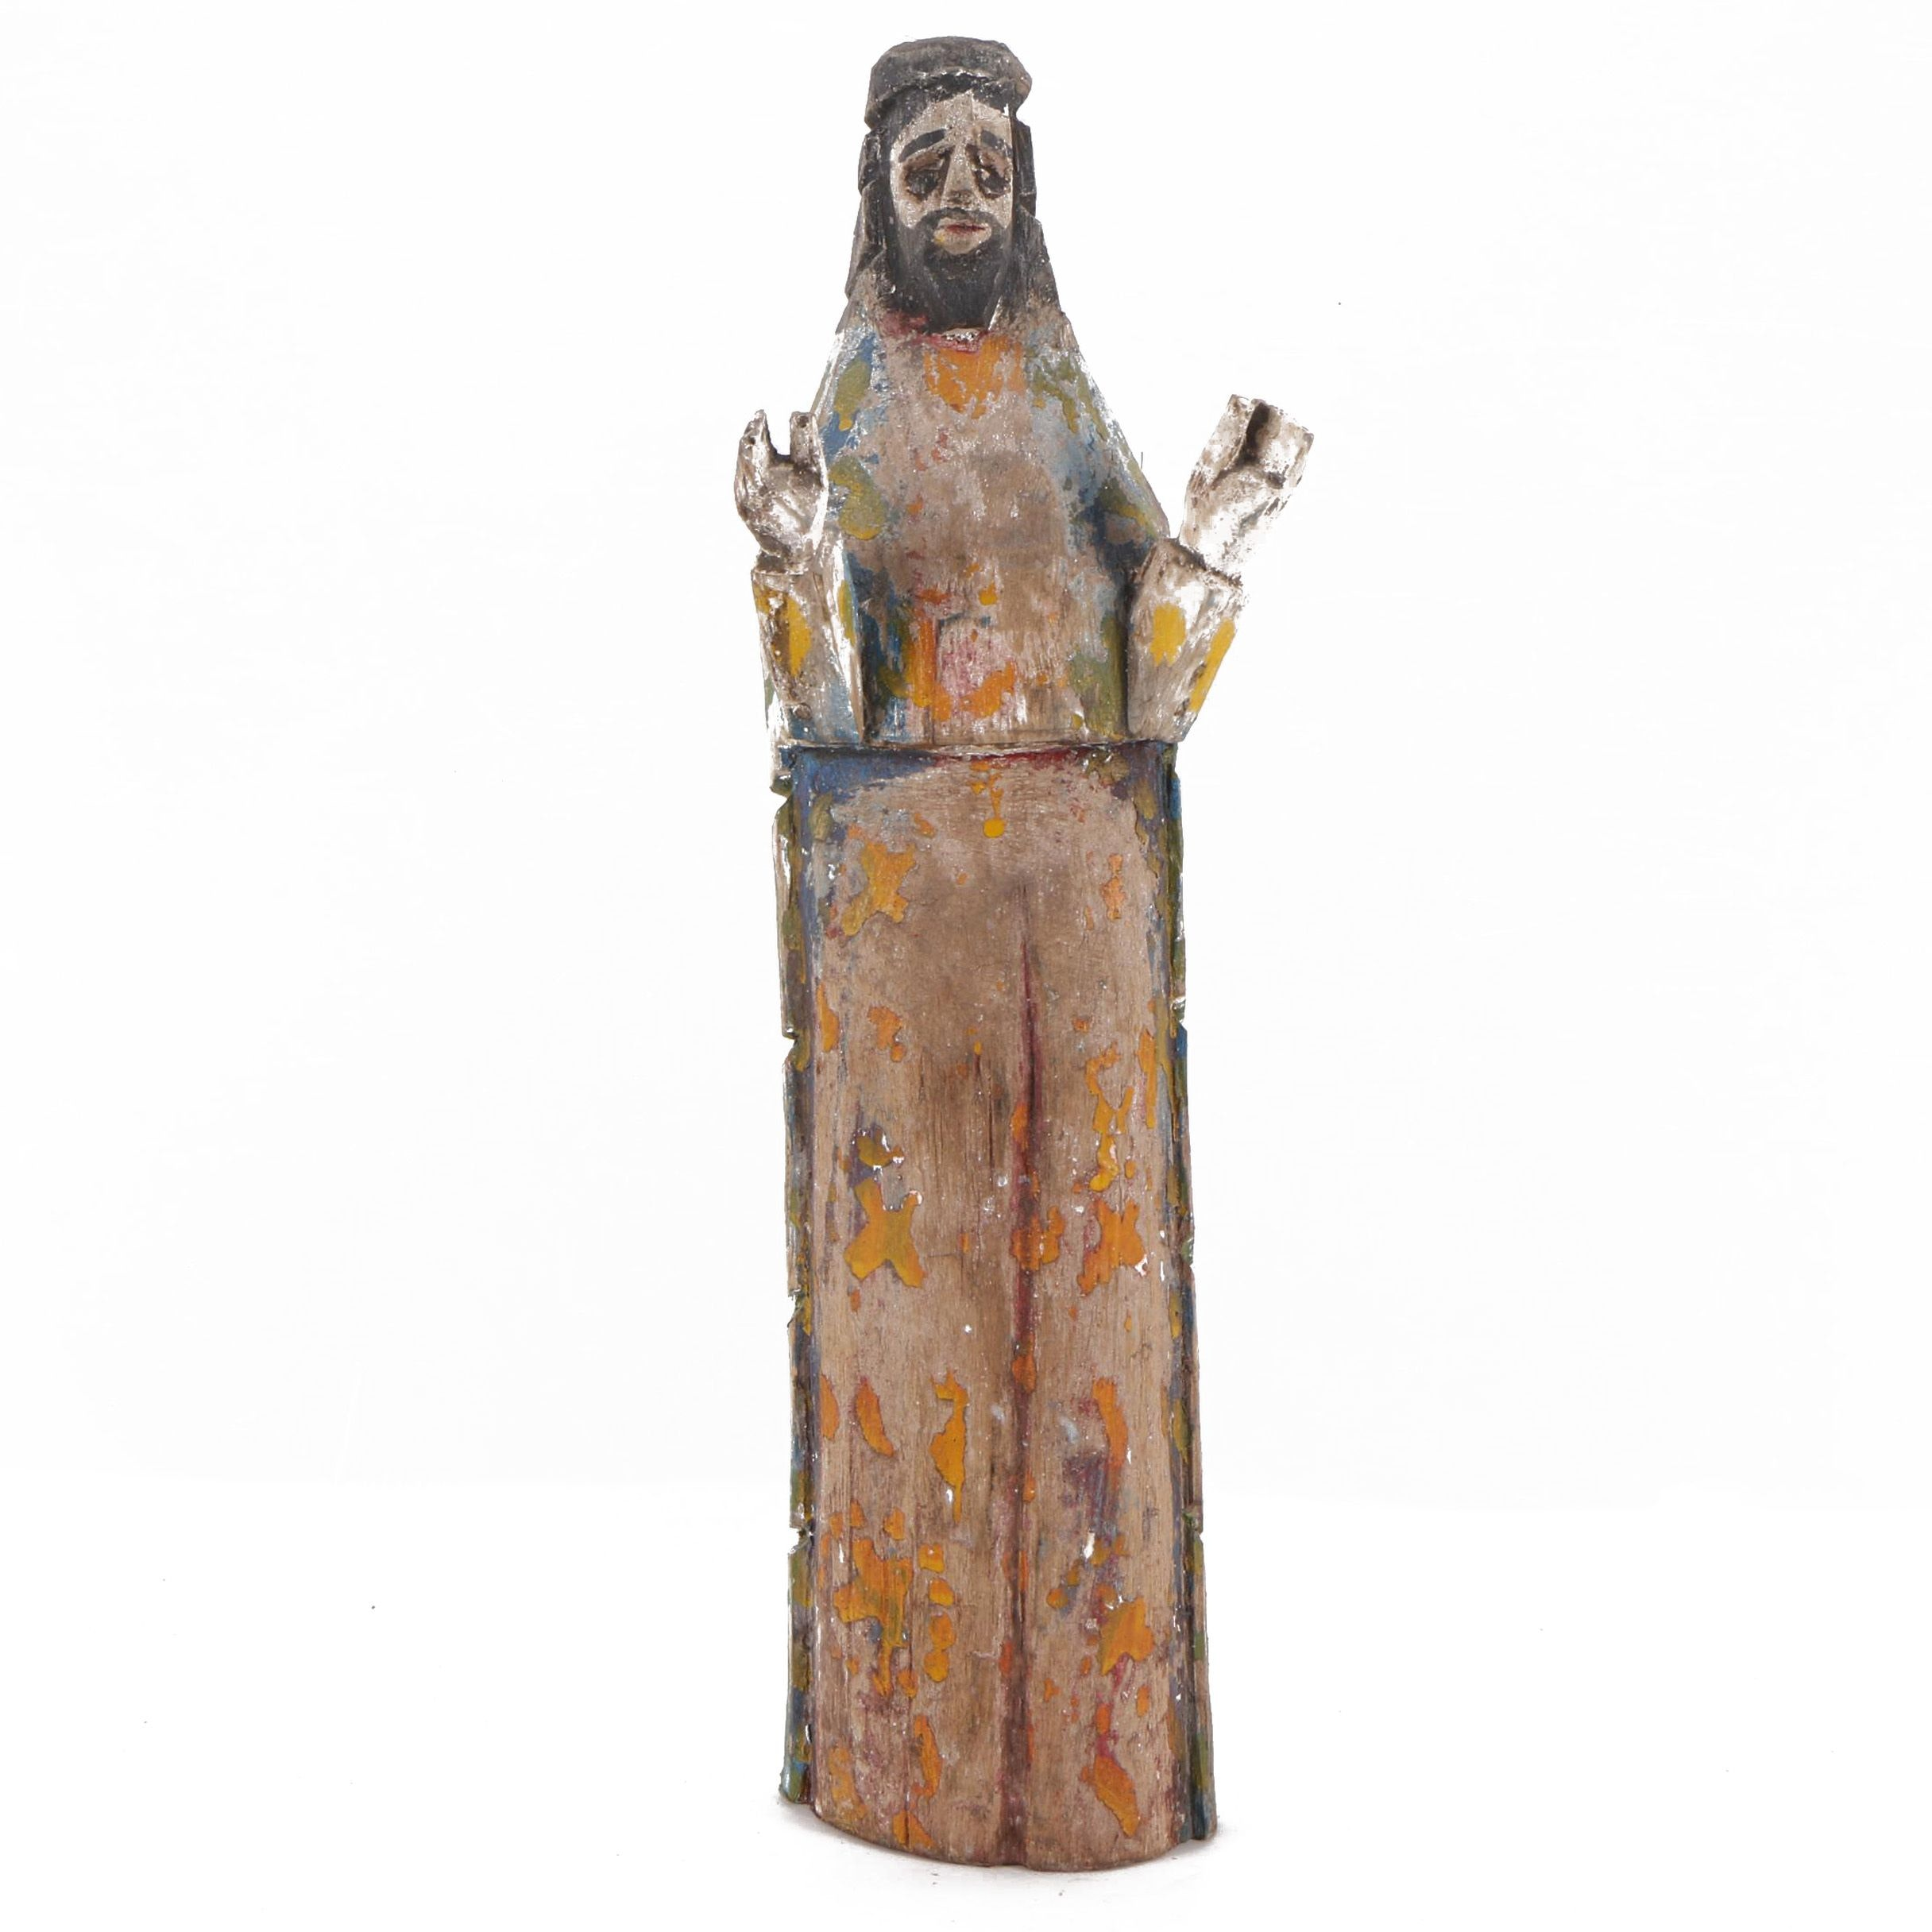 N.F. Polychrome Wooden Carving of Christlike Figure